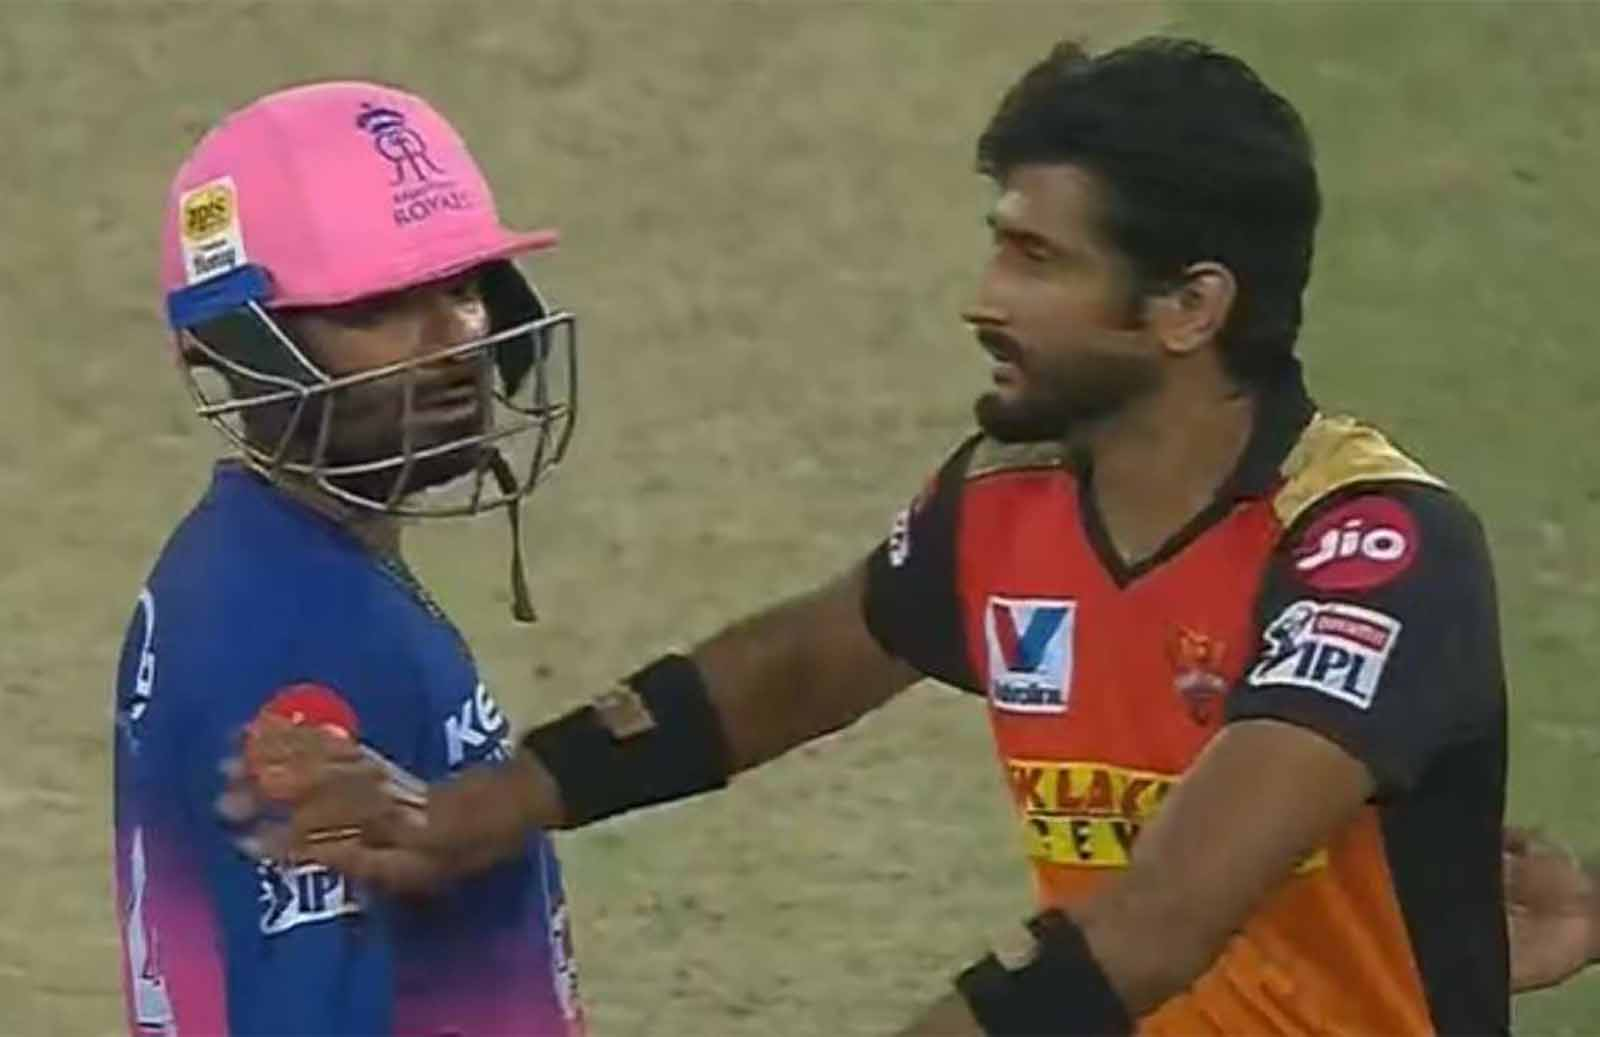 Rahul Tewatia loses His Control In a Heated Exchange With Khaleel Ahmed